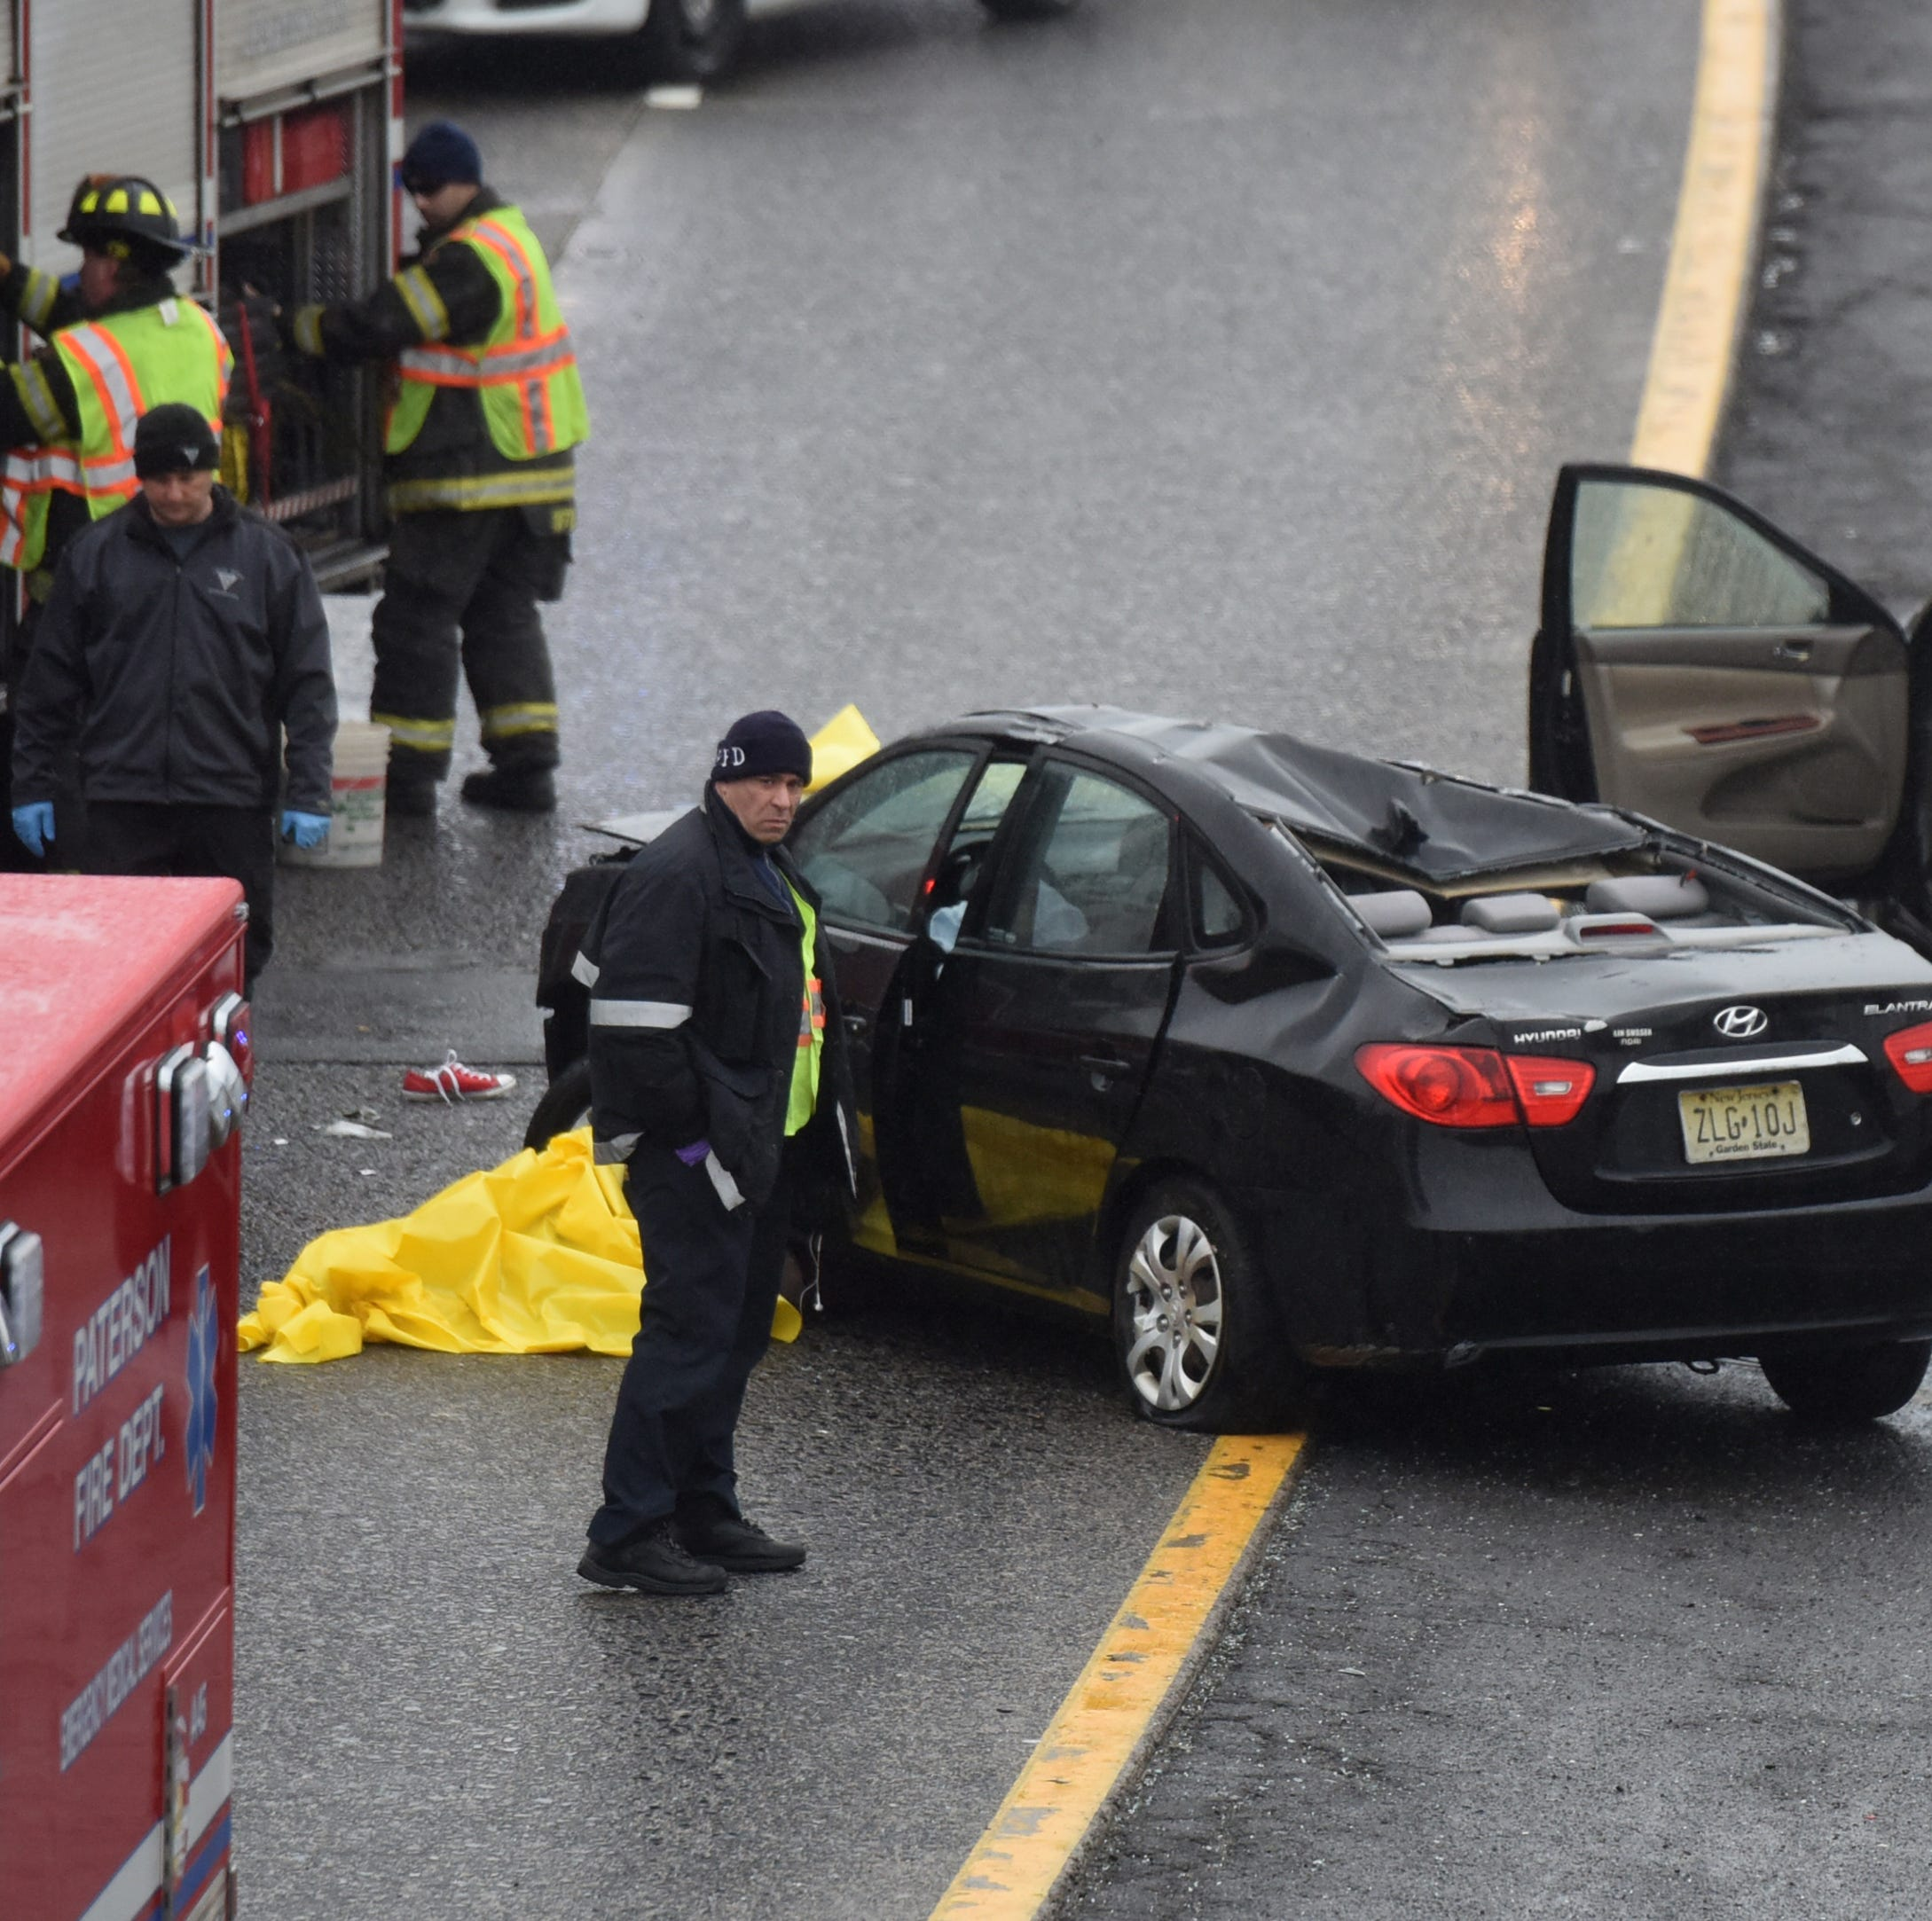 Bergenfield residents identified as pair killed on Route 80 in Paterson